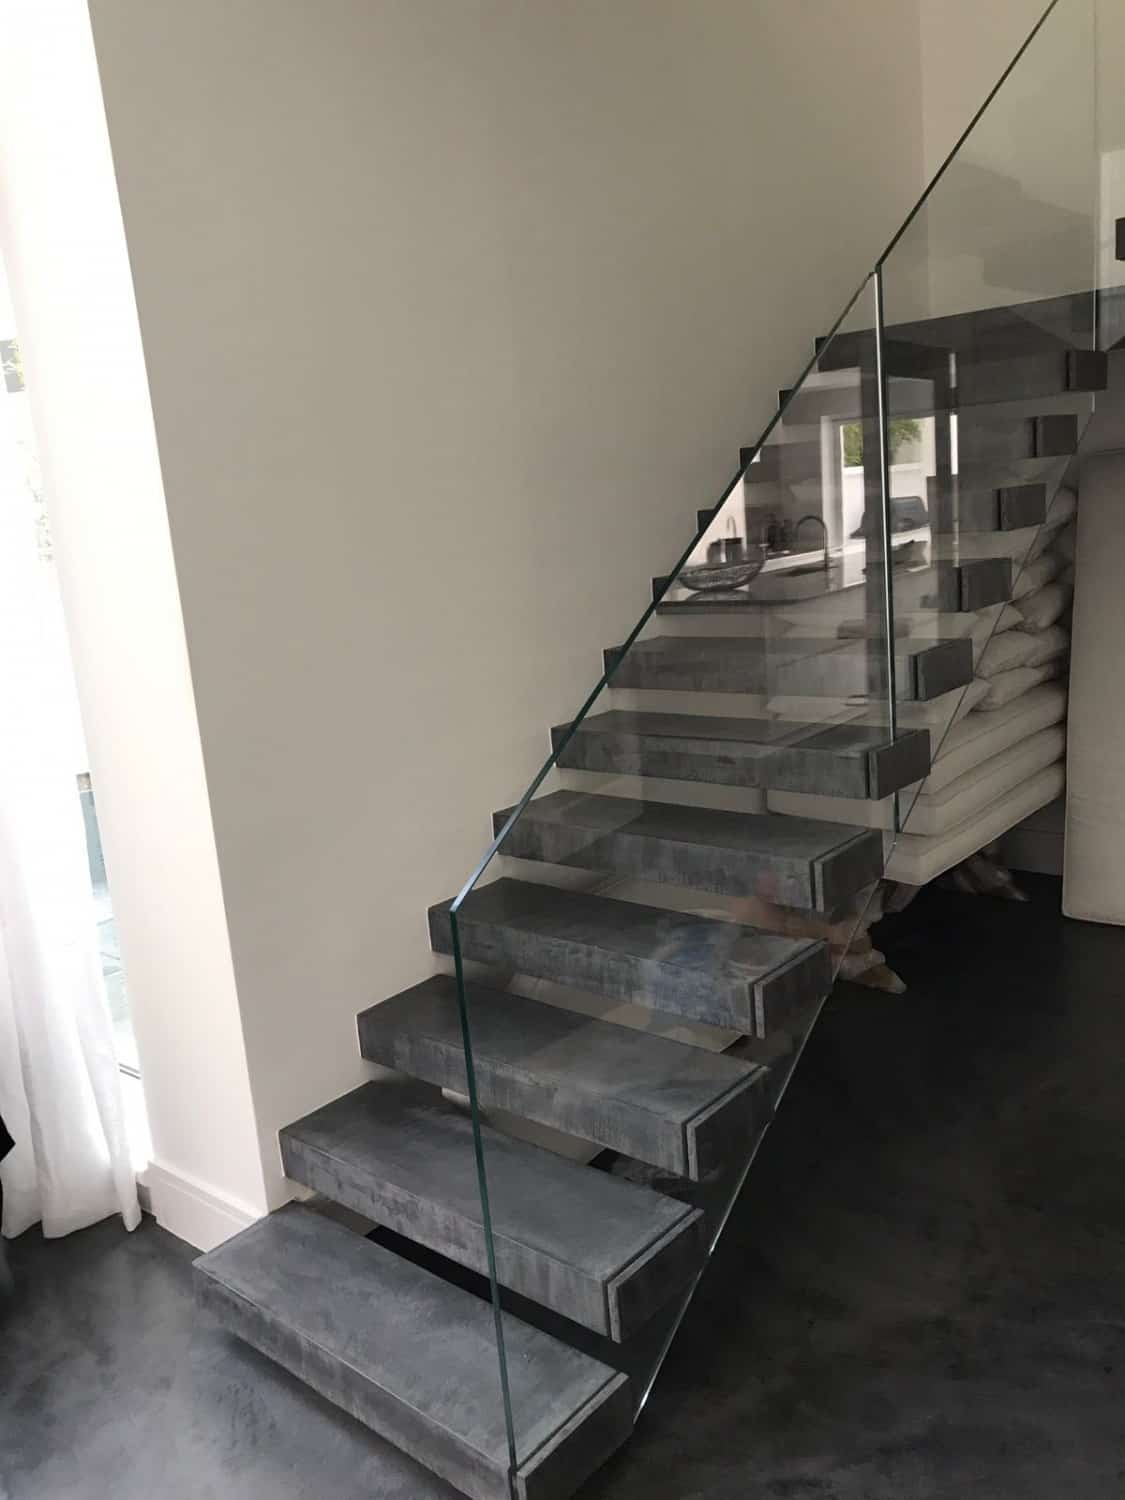 Concrete floor stair case with glass sides